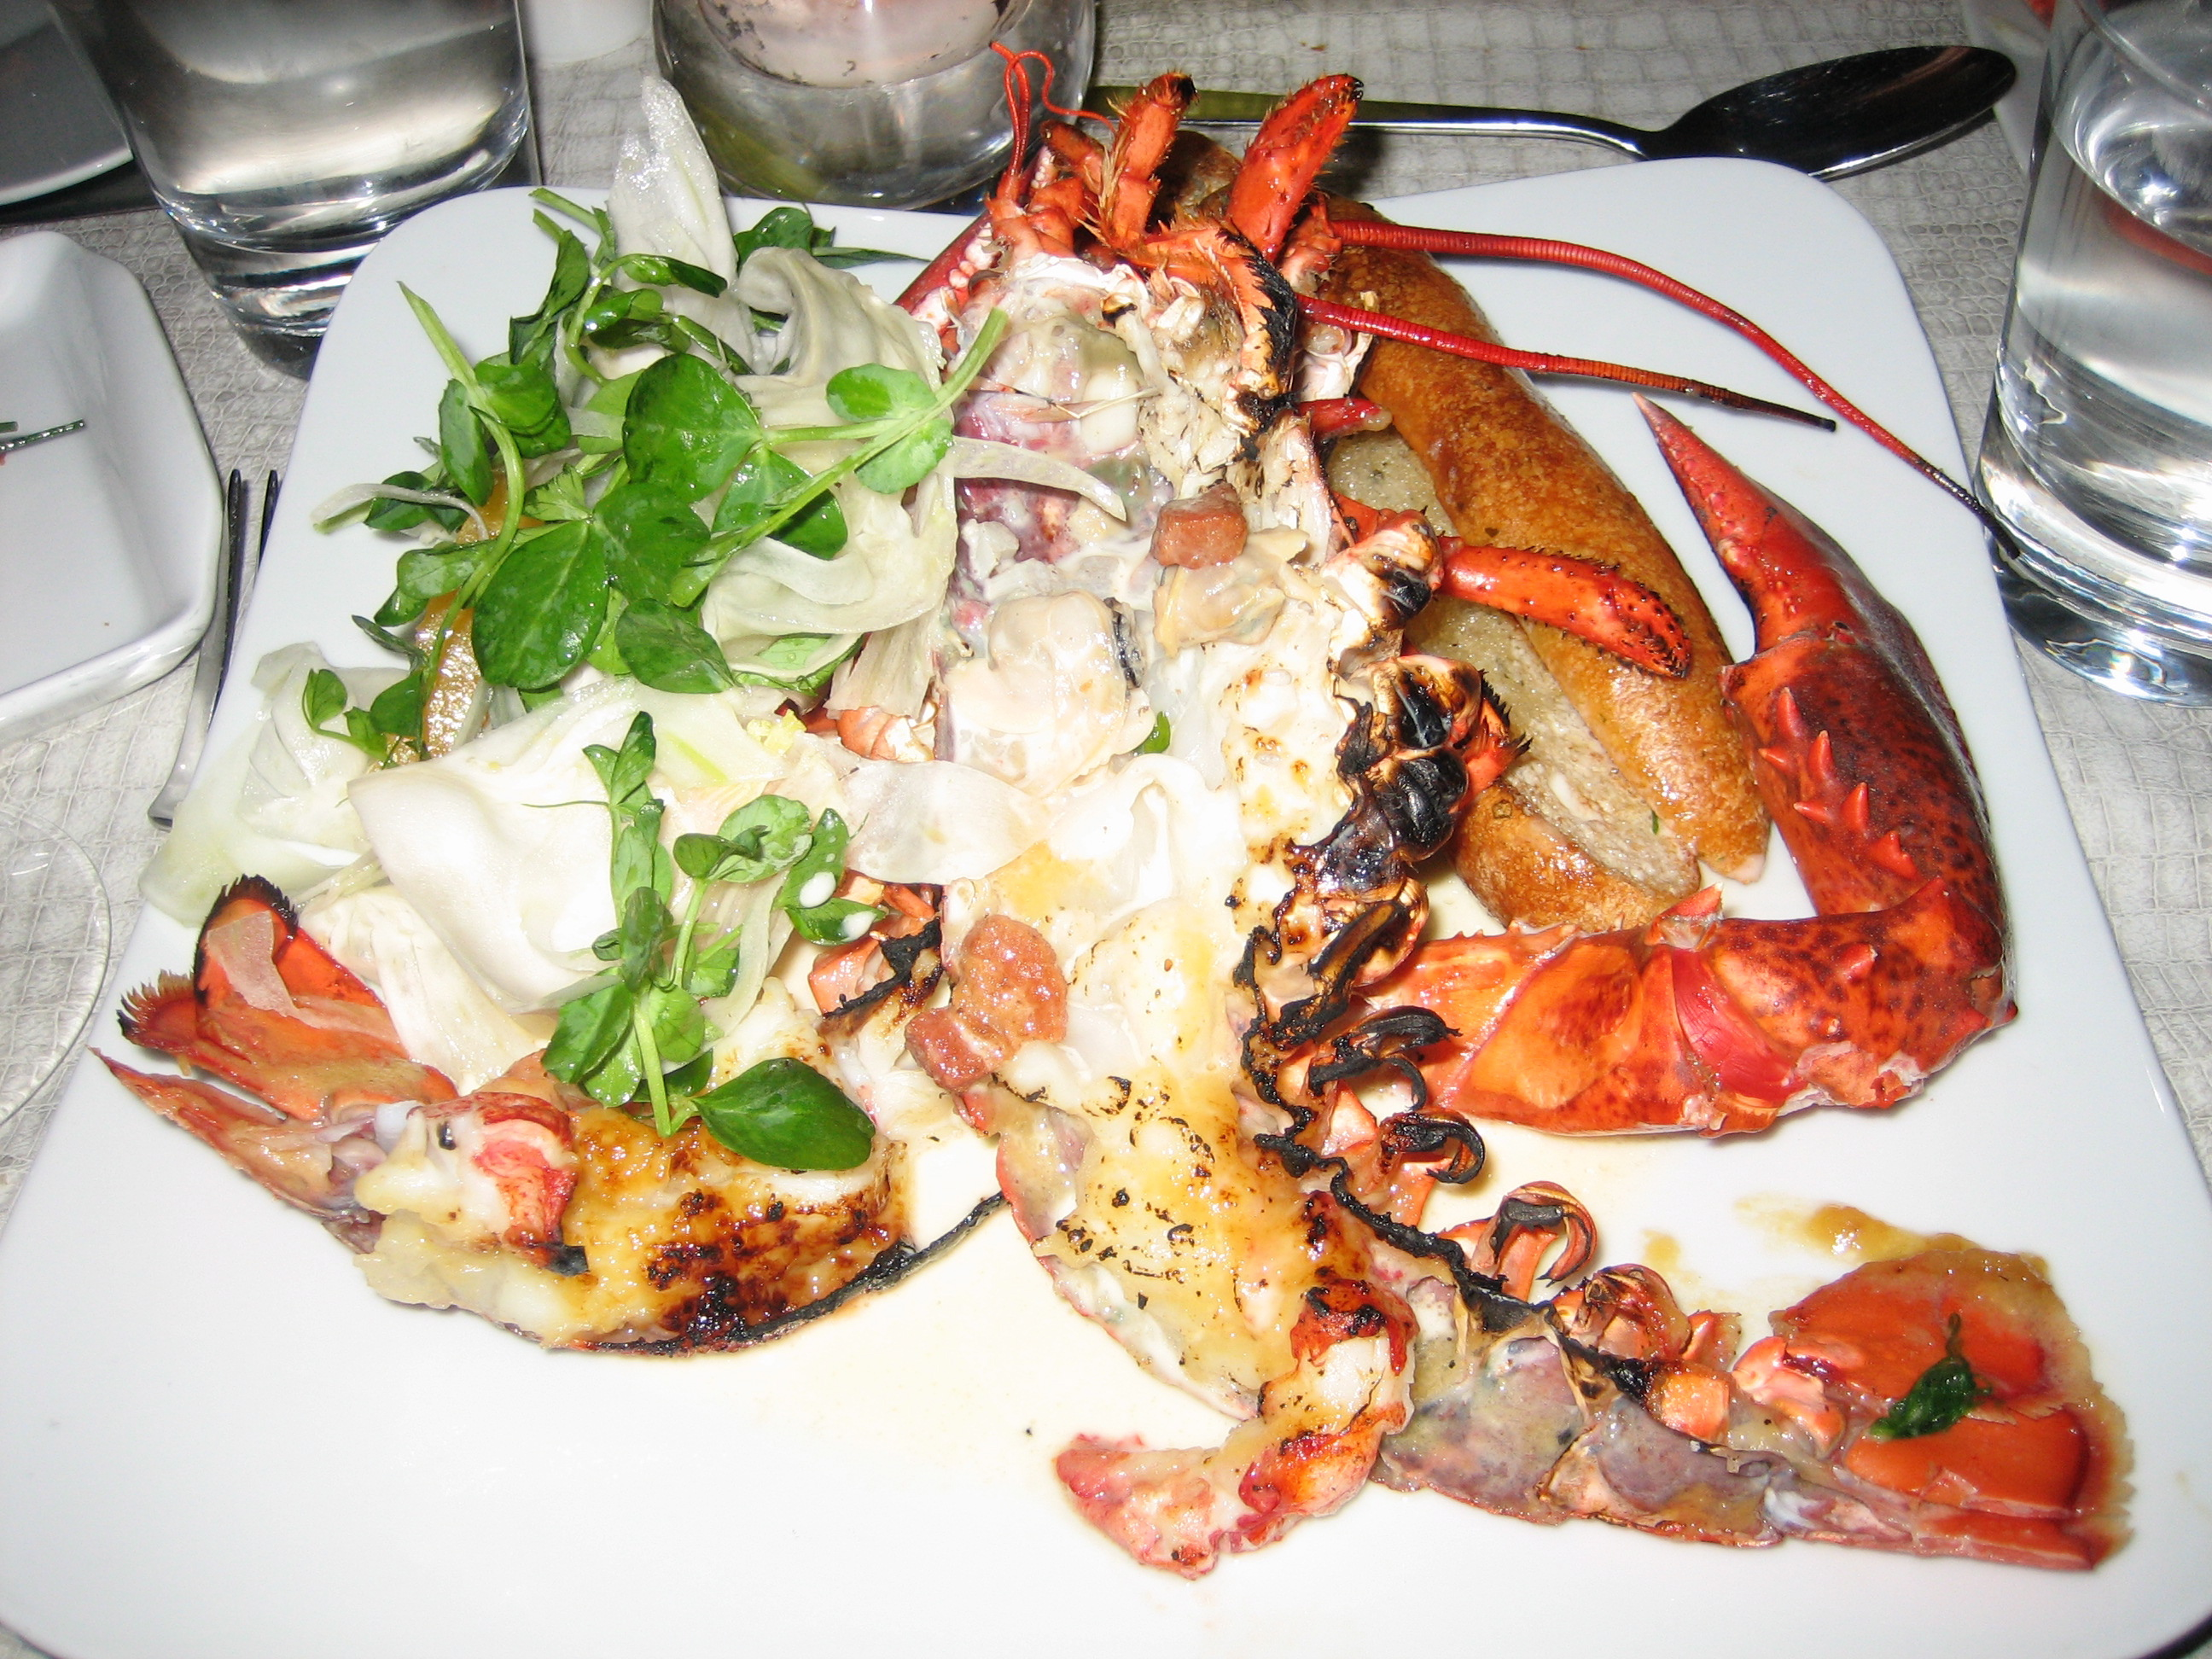 Lobster (which I split with L's filet mignon for surf and turf)